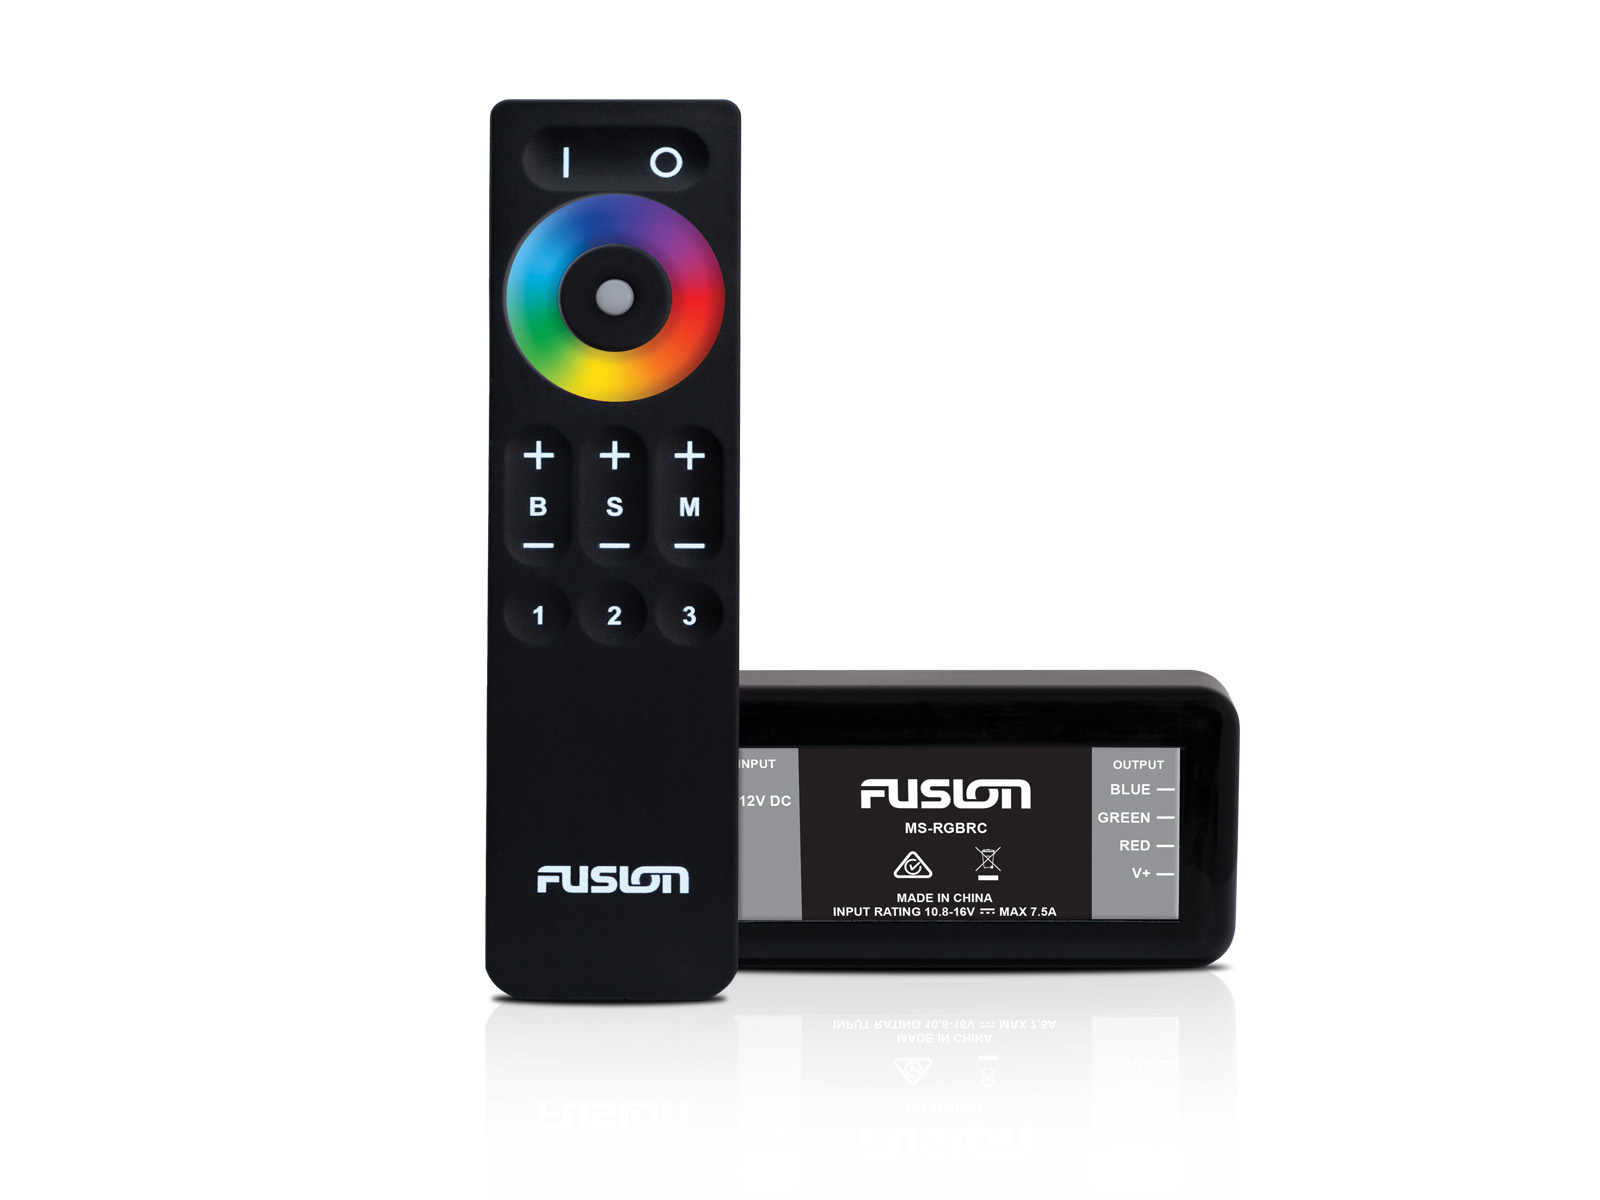 Fusion MS-RGBRC Wireless Remote and Lighting Control - # 010-12850-00